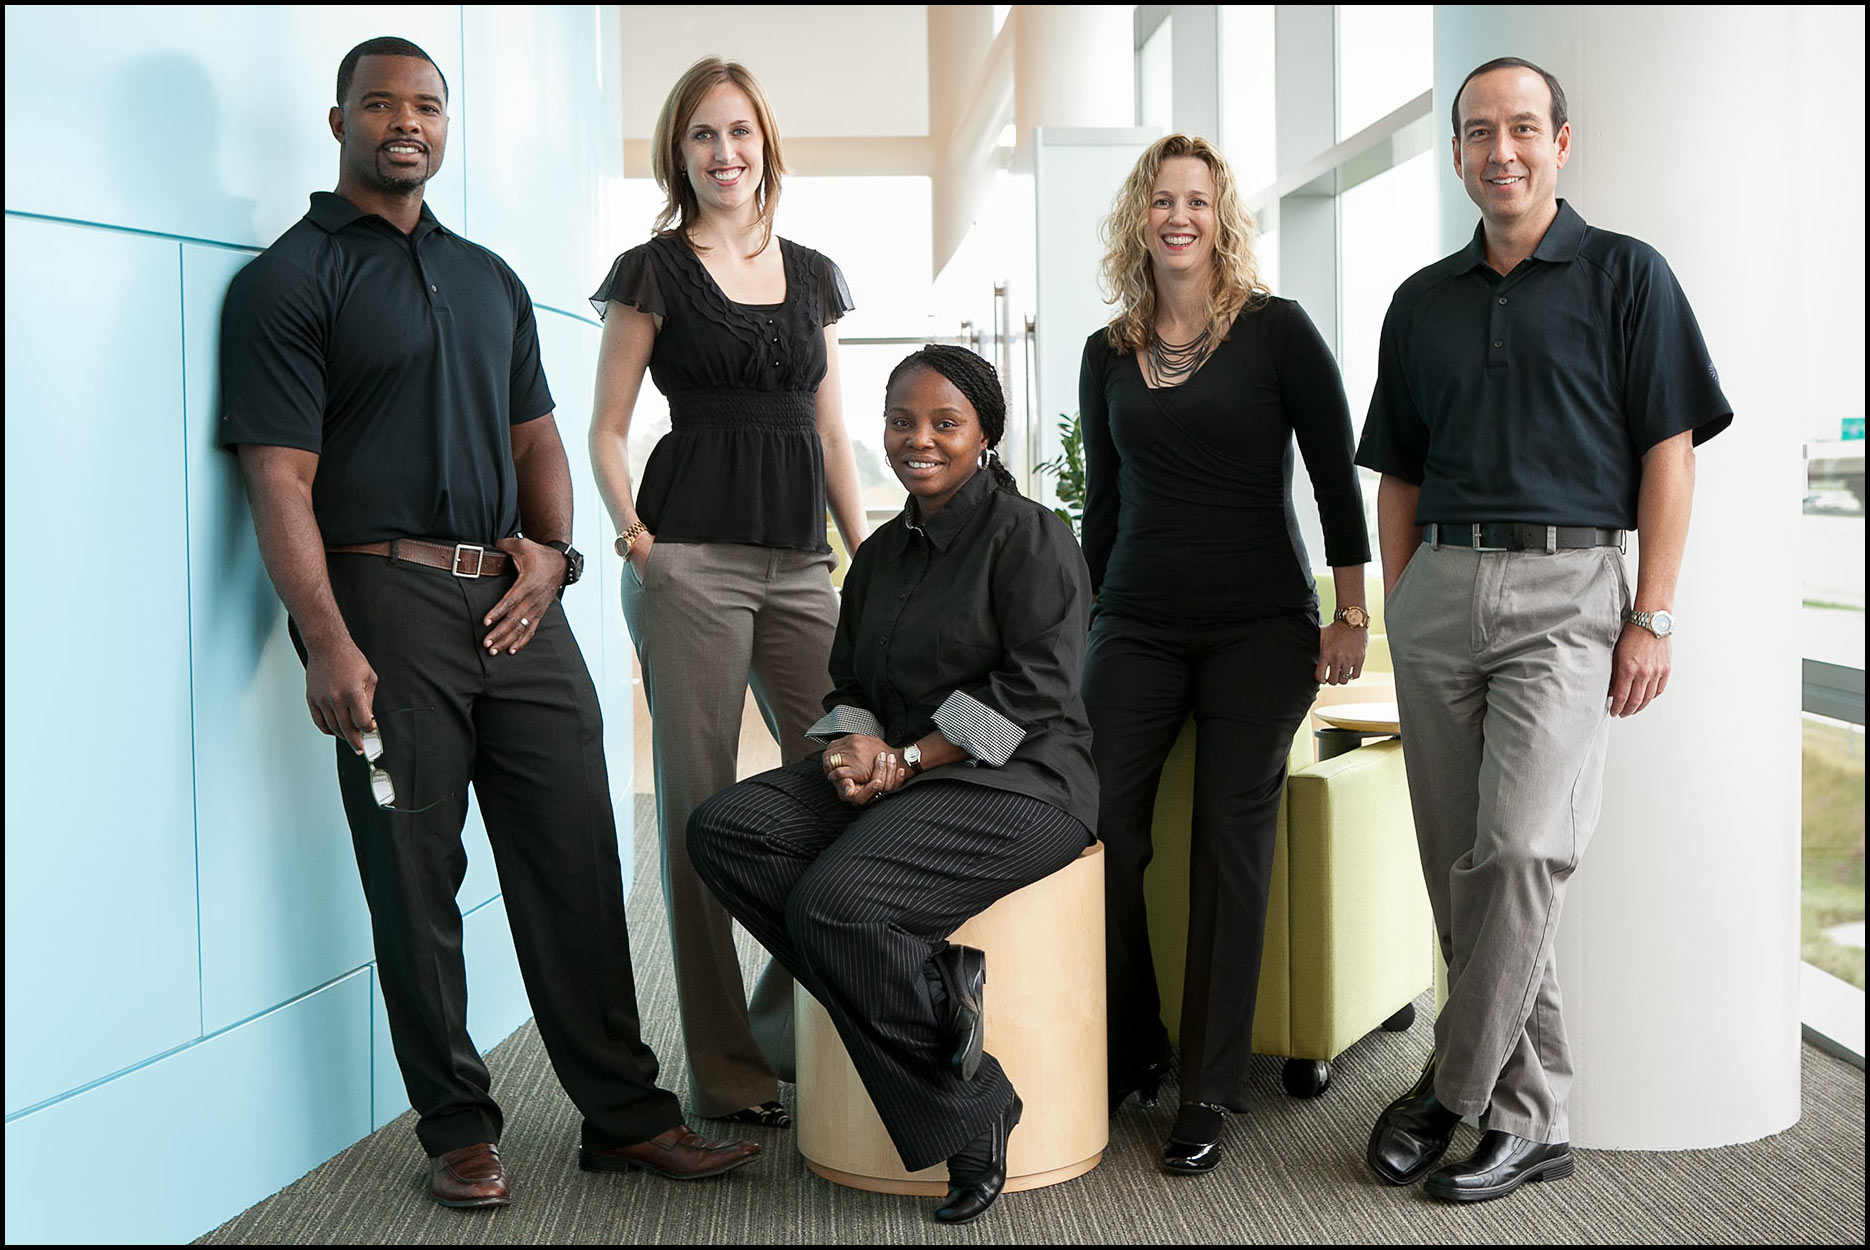 Management team, in business casual dress, stands in an office atrium for a group photo.